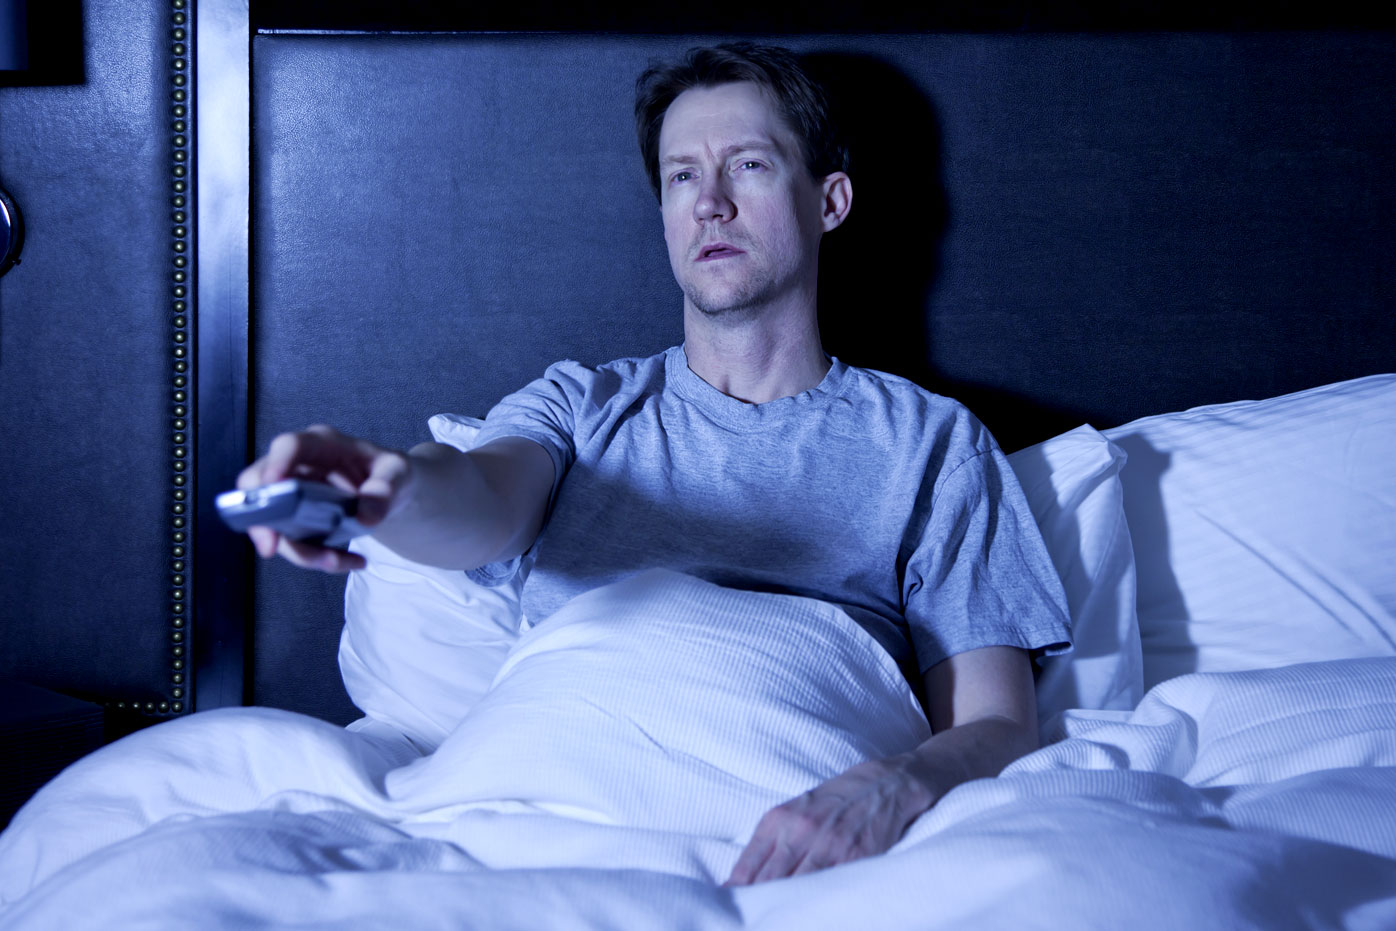 Binge-watching wrecks your sleep